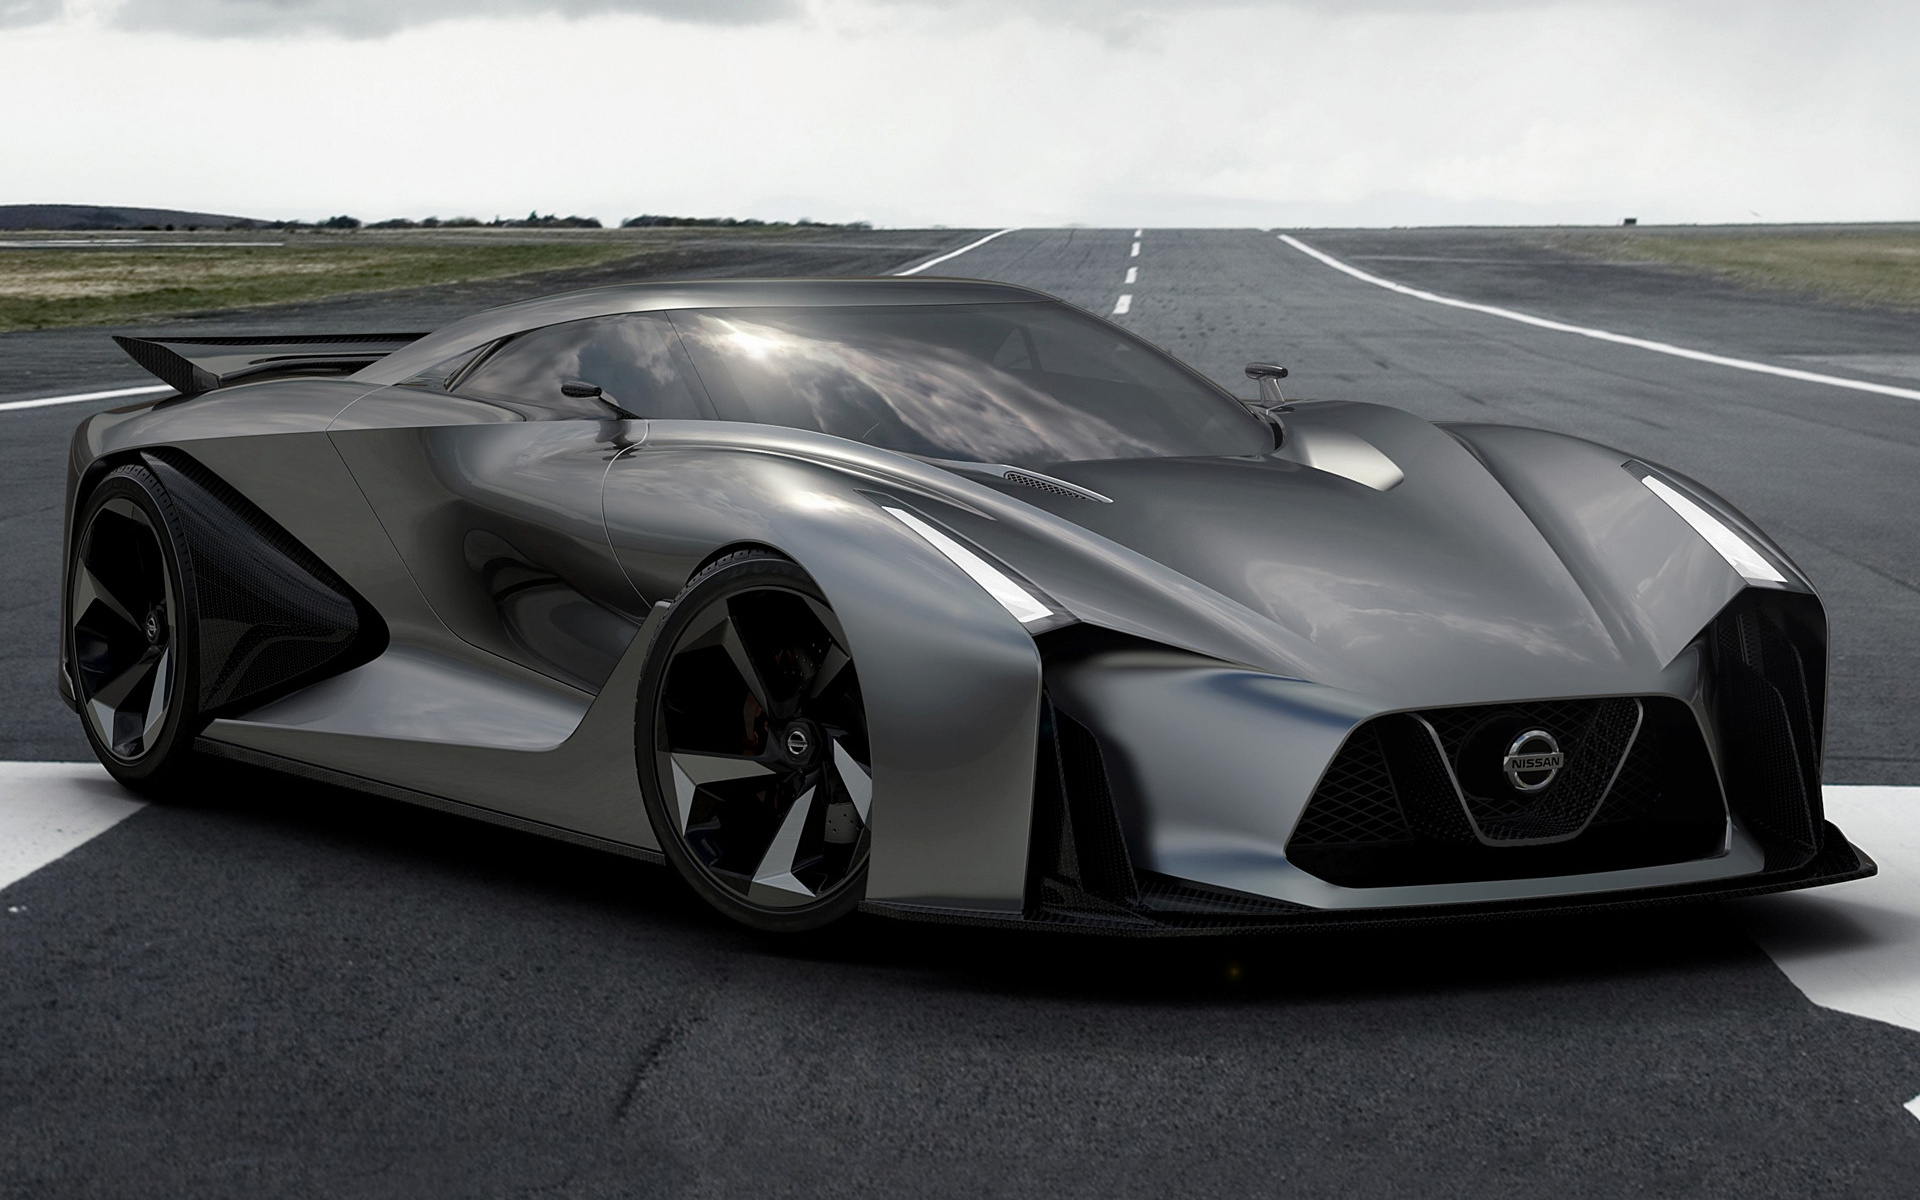 1920x1200 - Nissan Concept Wallpapers 7